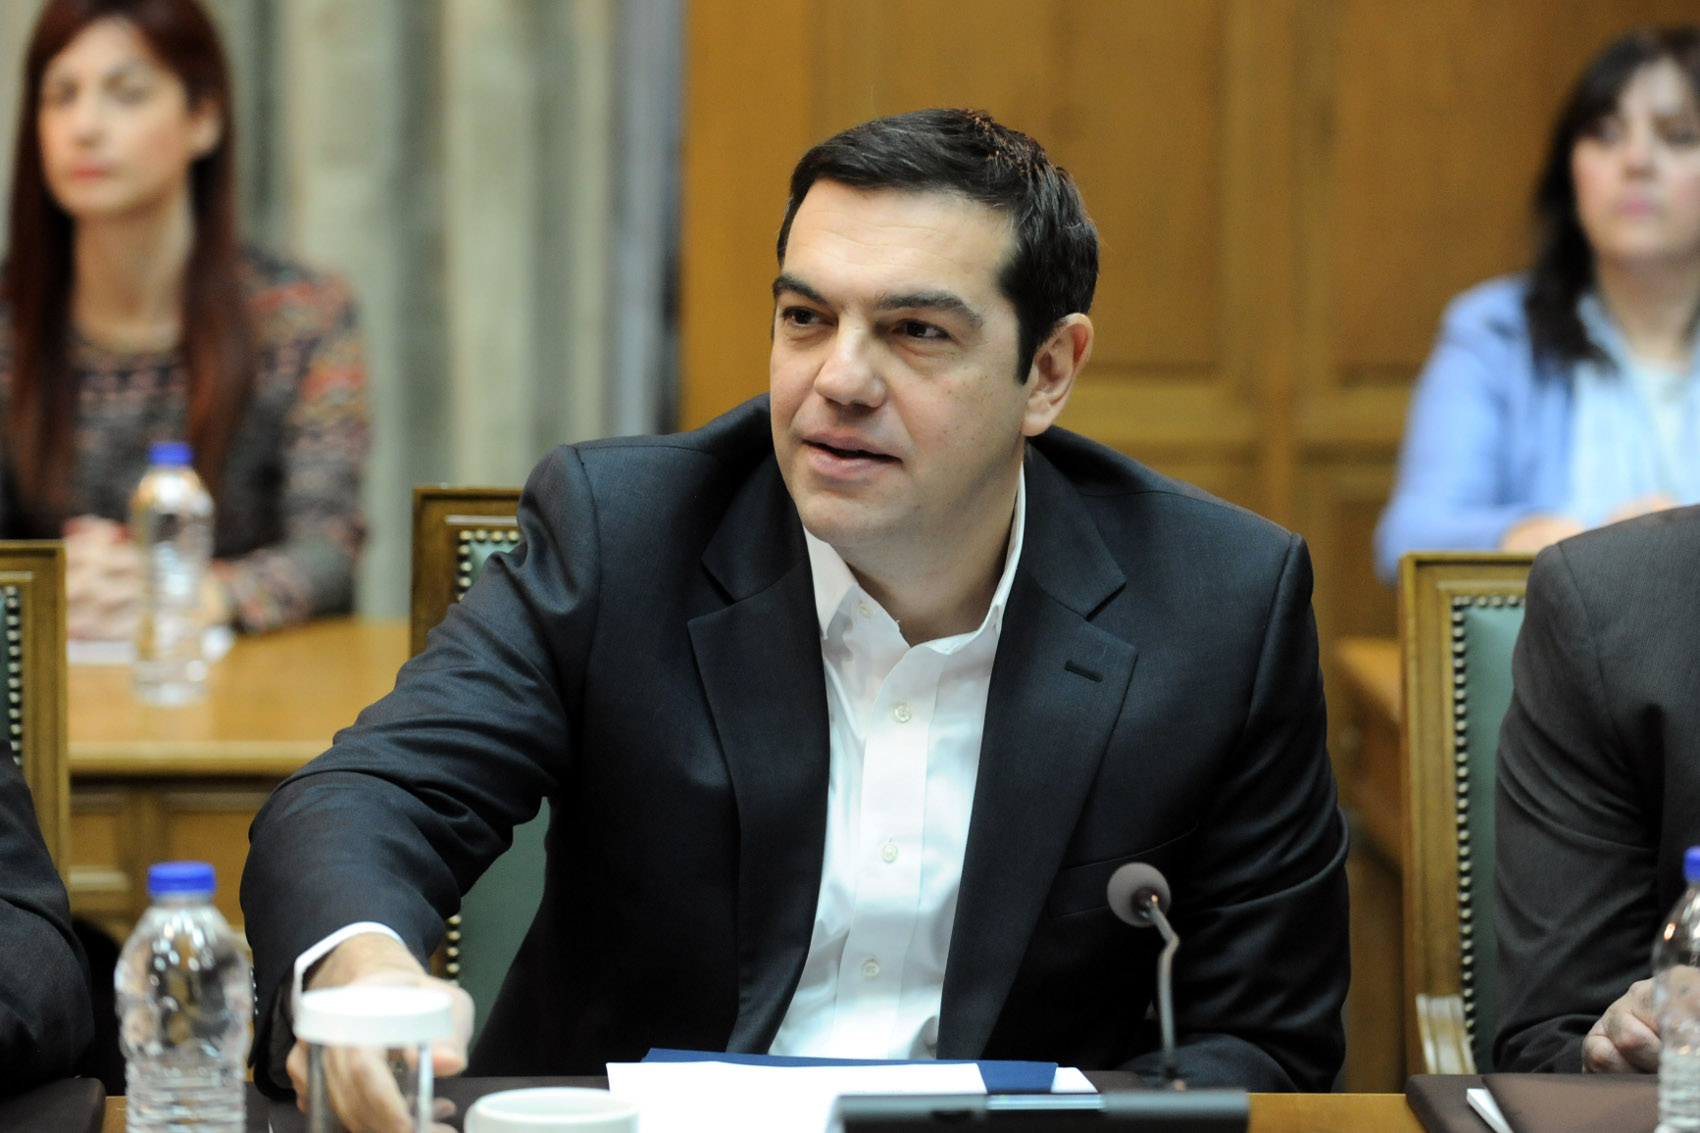 Tsipras presents post-bailout strategy in speech to cabinet